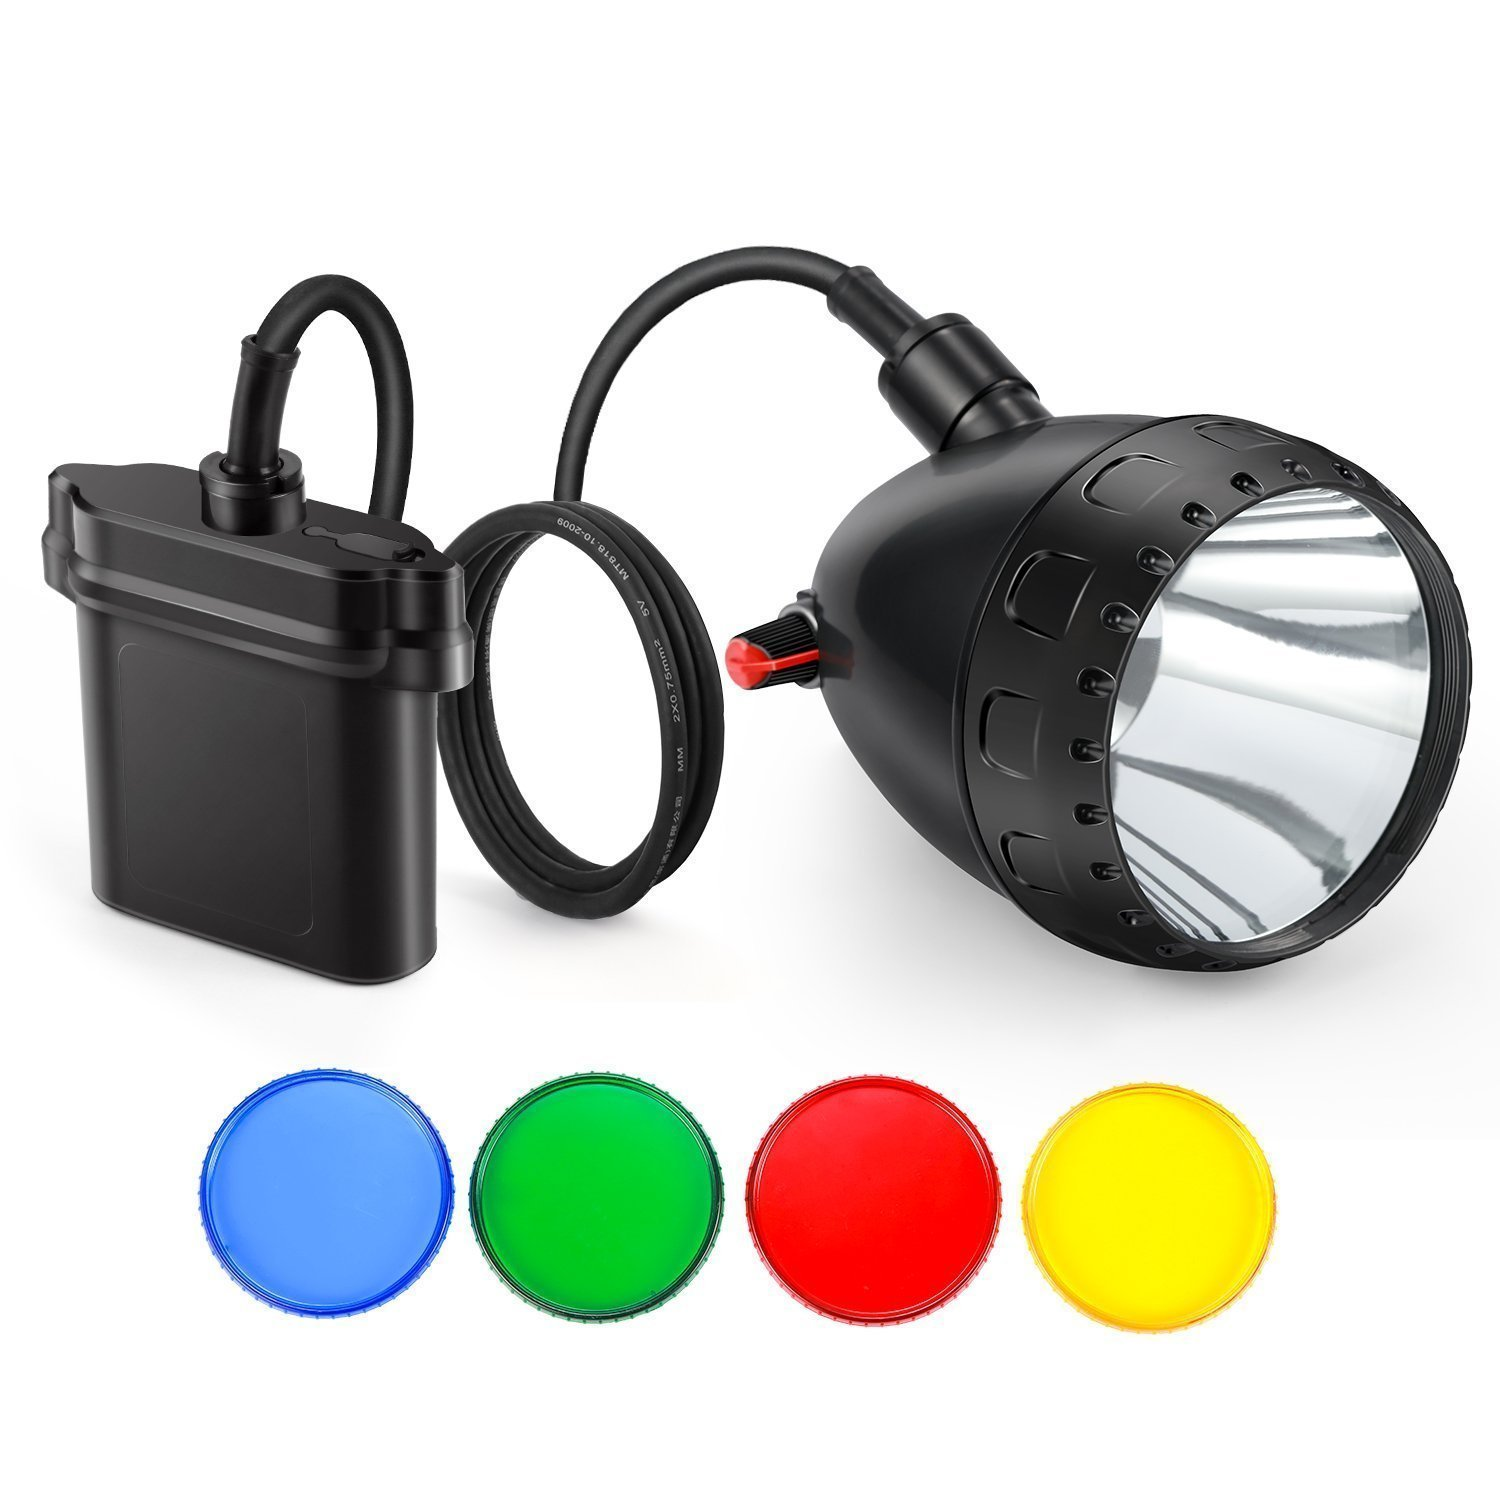 Kohree Cree U2 10W Led Mining Head Light with Filters Dimmable Rechargeable 11000mah Battery Headlamp Camping Predator Hunting 3w led led 18hours 4500 10000lux usa cree headlamp cordless mining head light free shipping